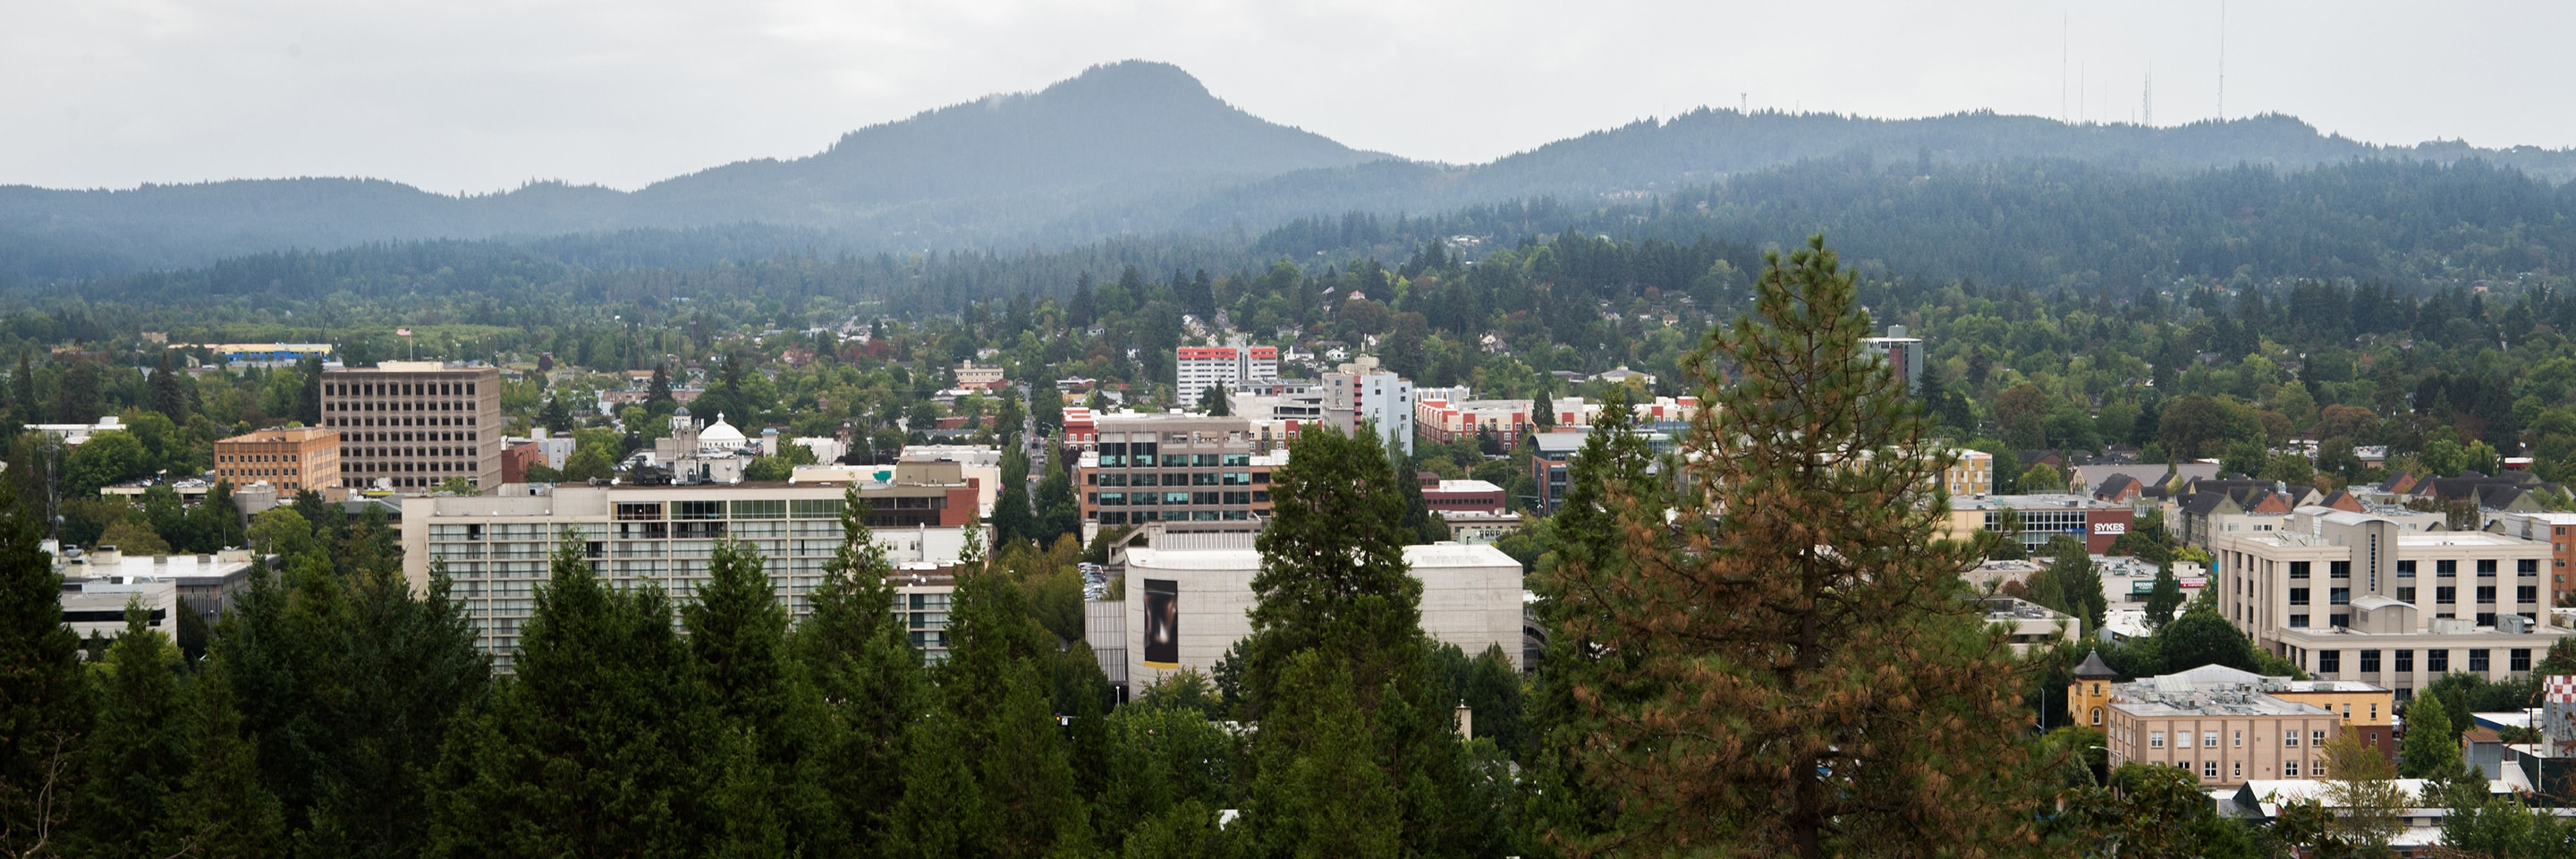 Hotels in Eugene